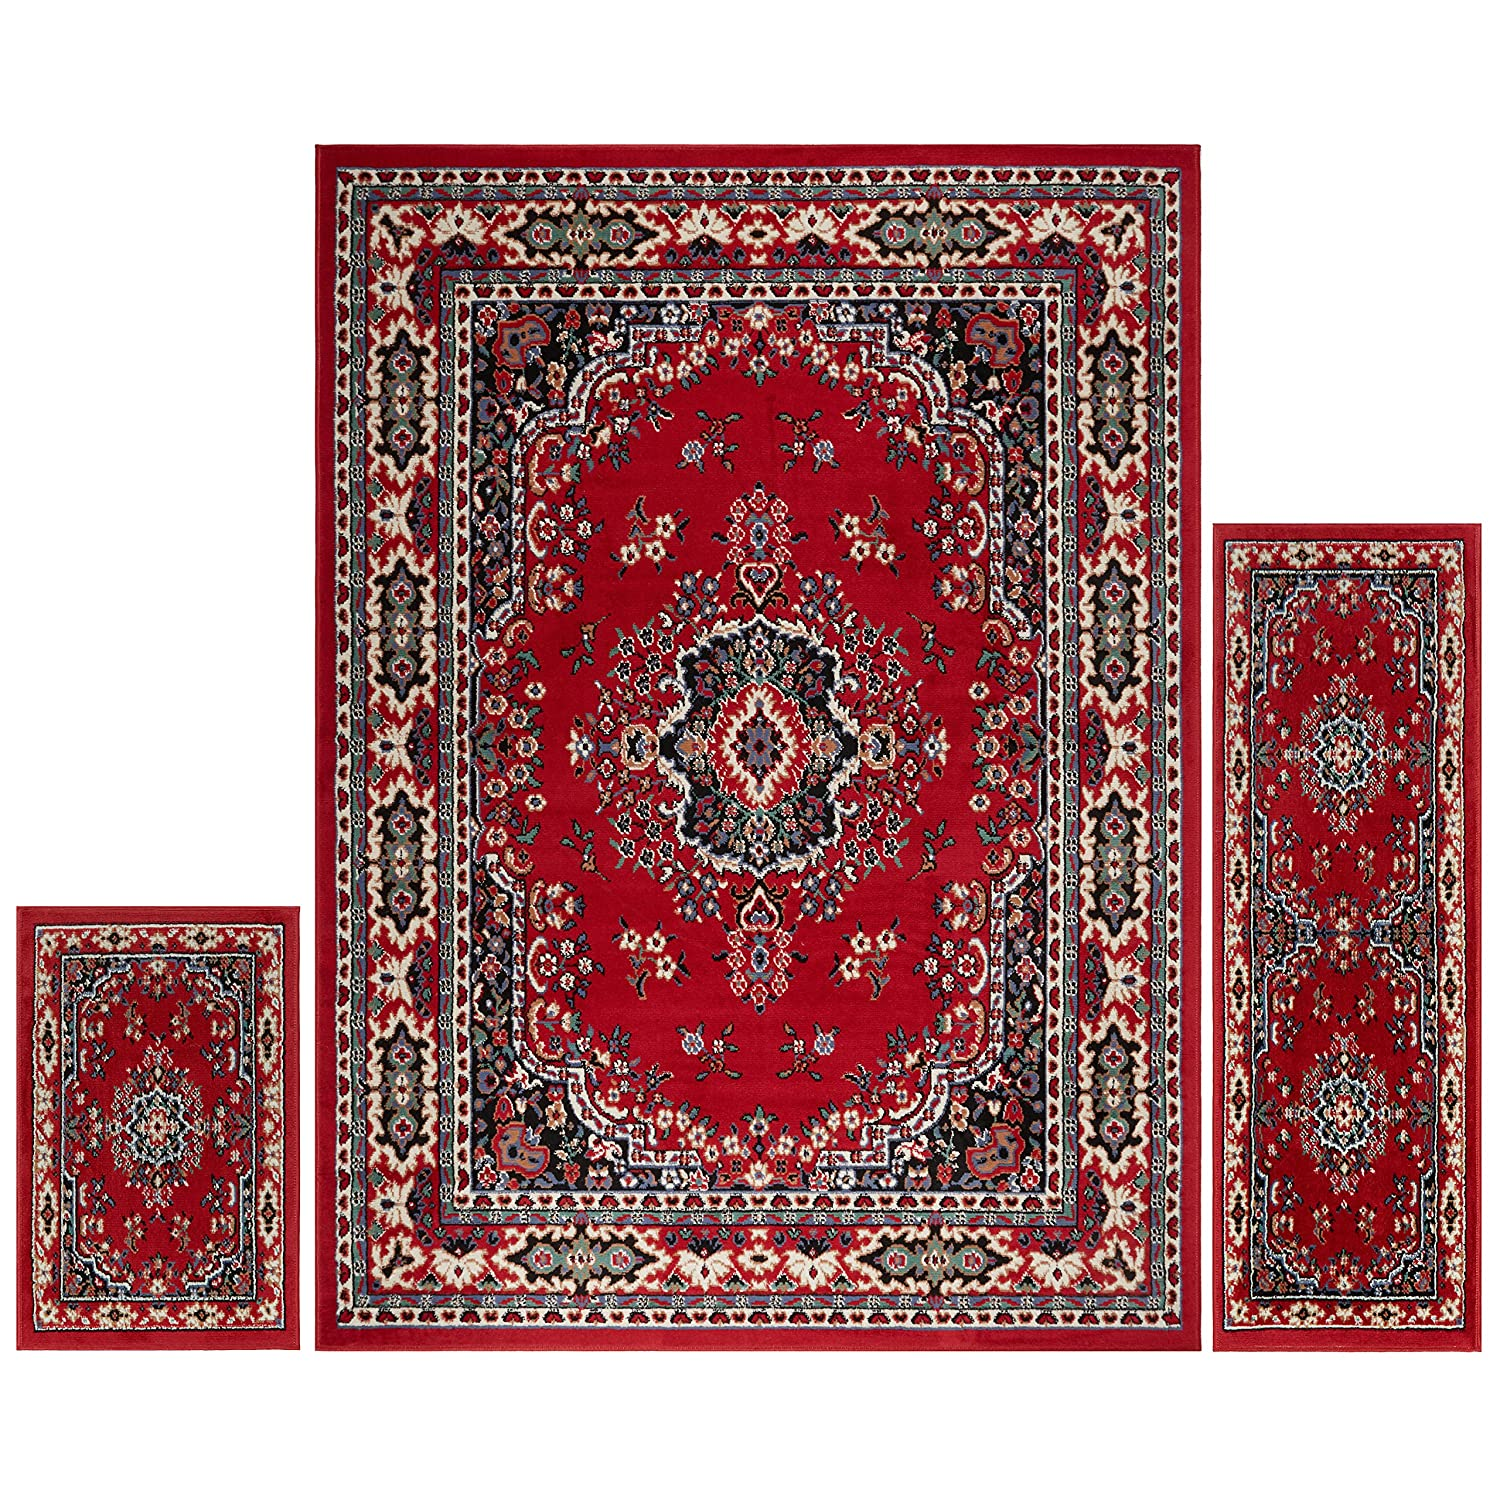 Home Dynamix Area Rugs: Ariana Rug: 7069 Traditional Persian Medallion Claret: 3 Piece Set